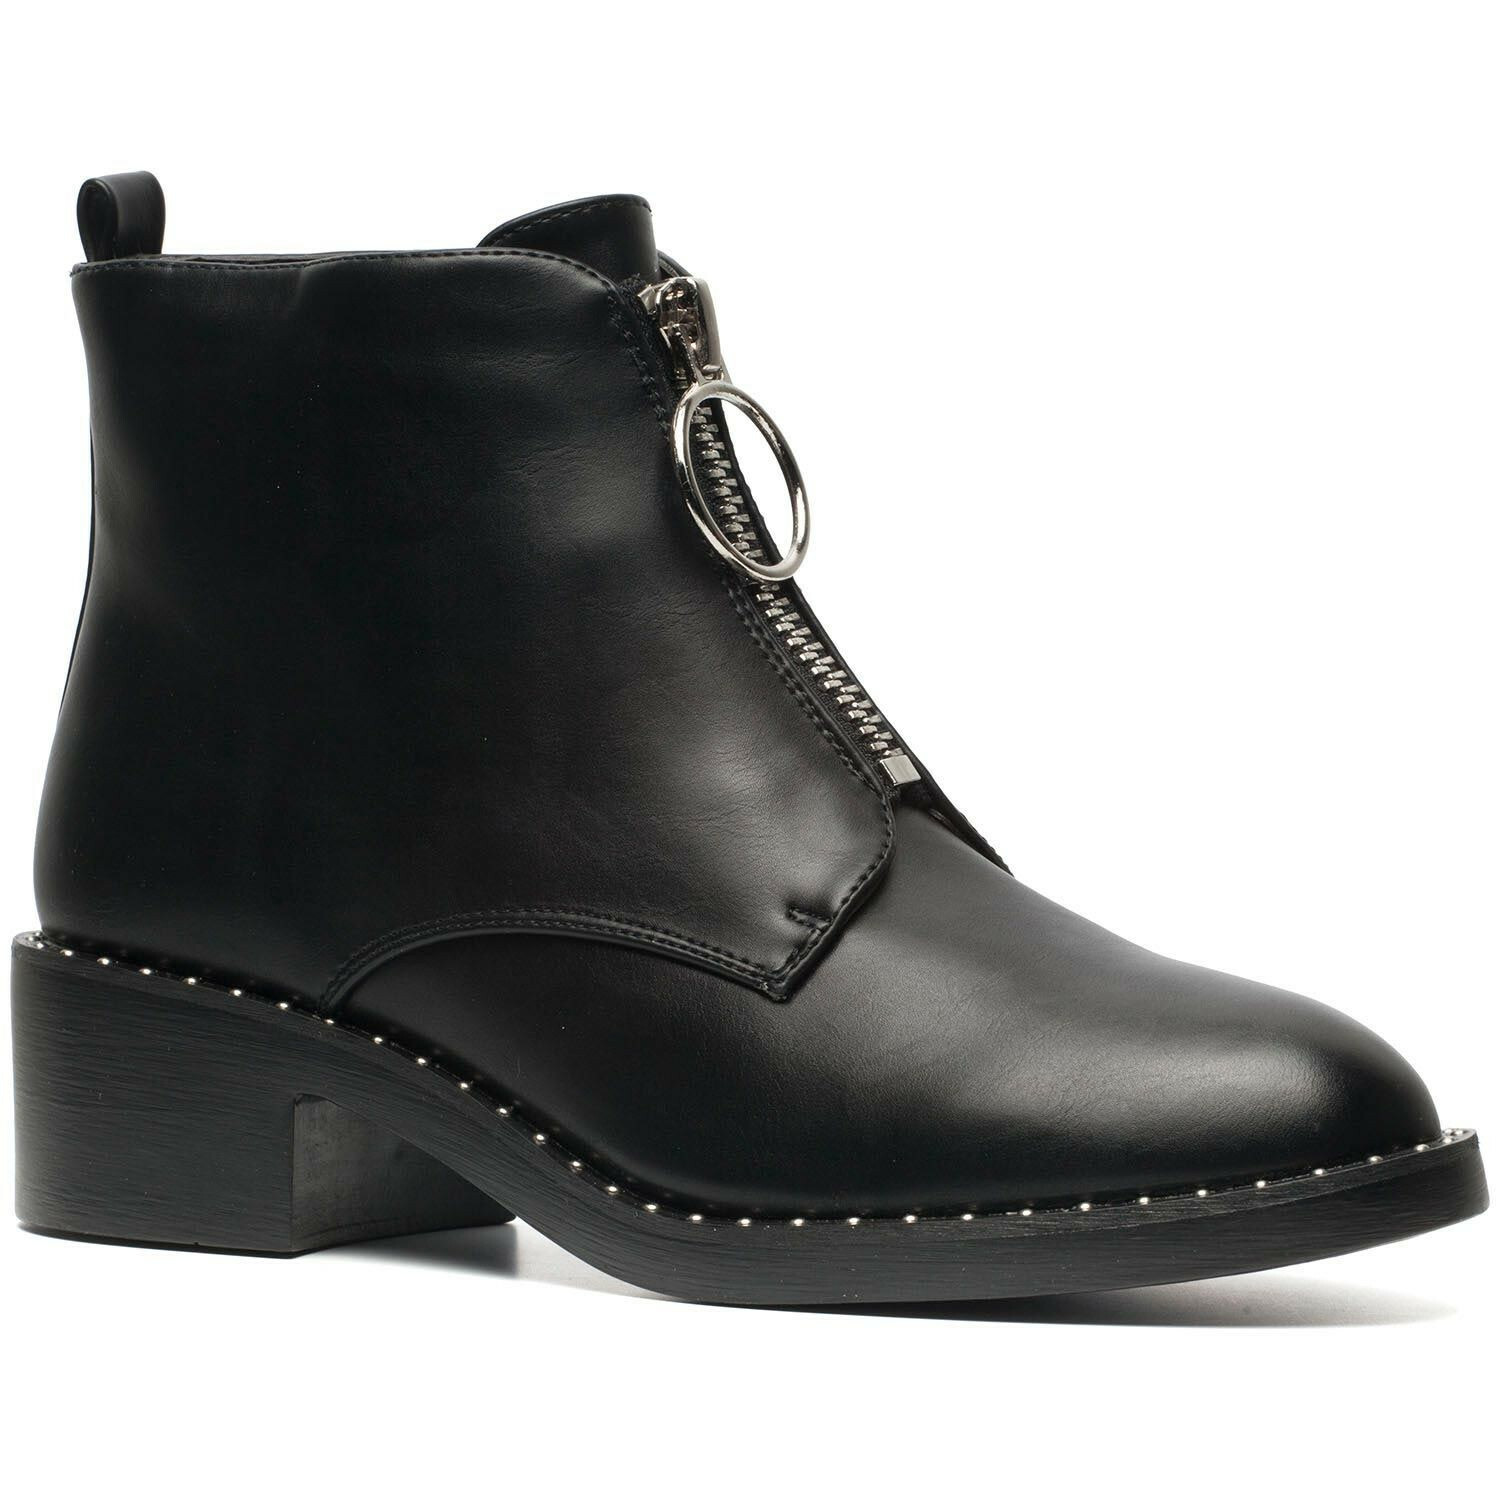 ZIPPED 'N STUDDED BOOTS